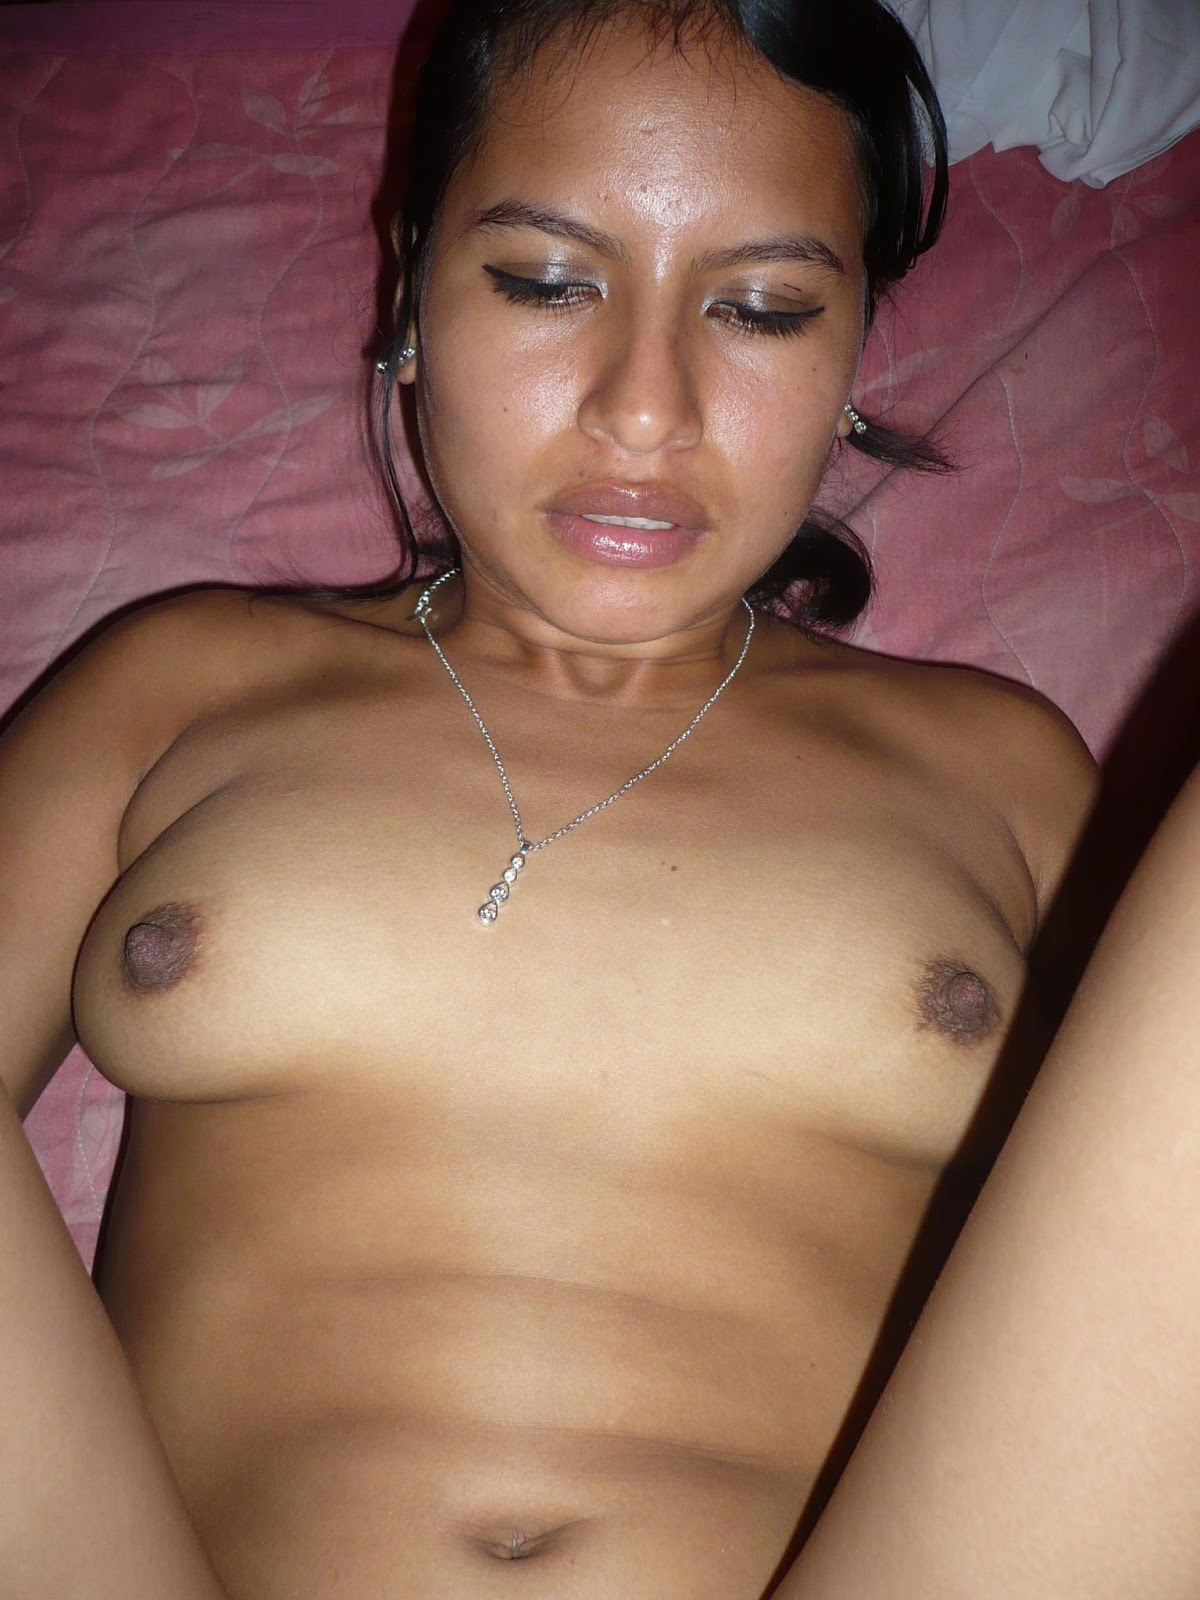 from Damien ecuador young models nude